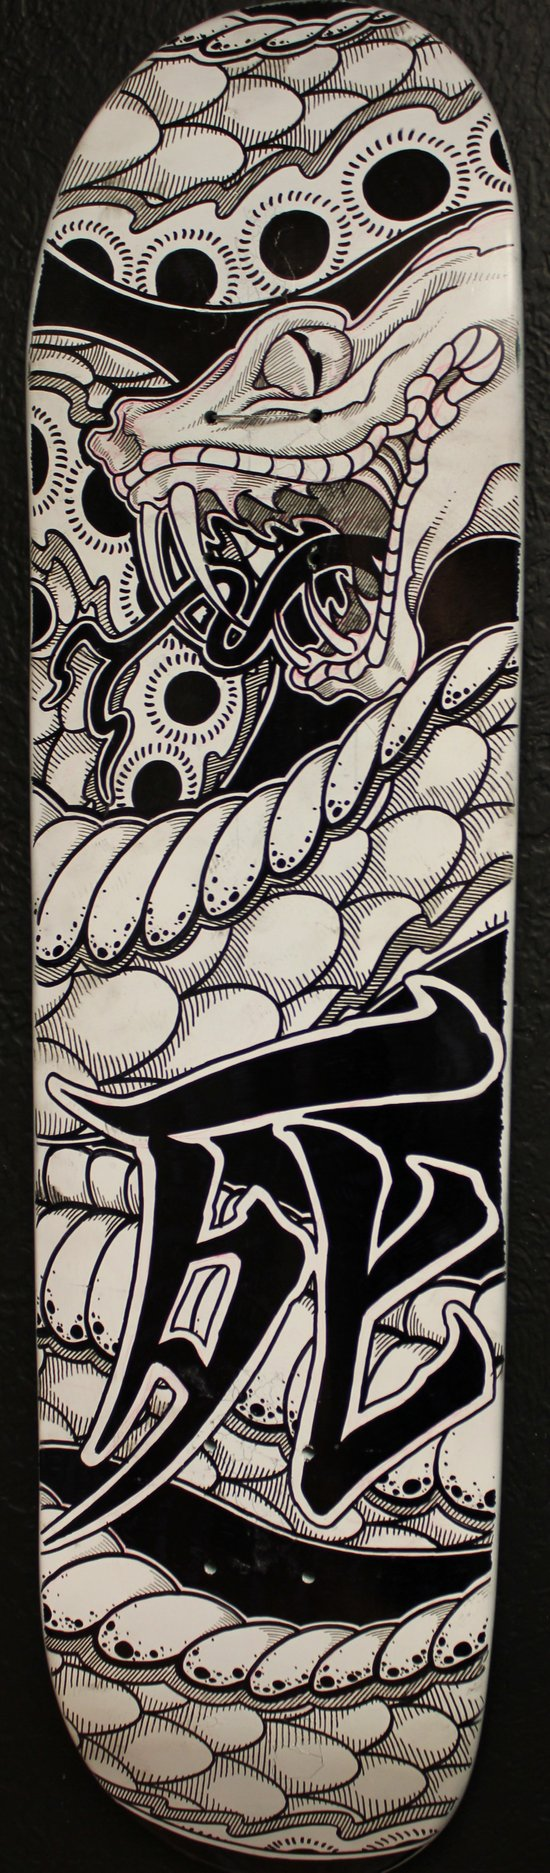 Death snake skateboard Art Print